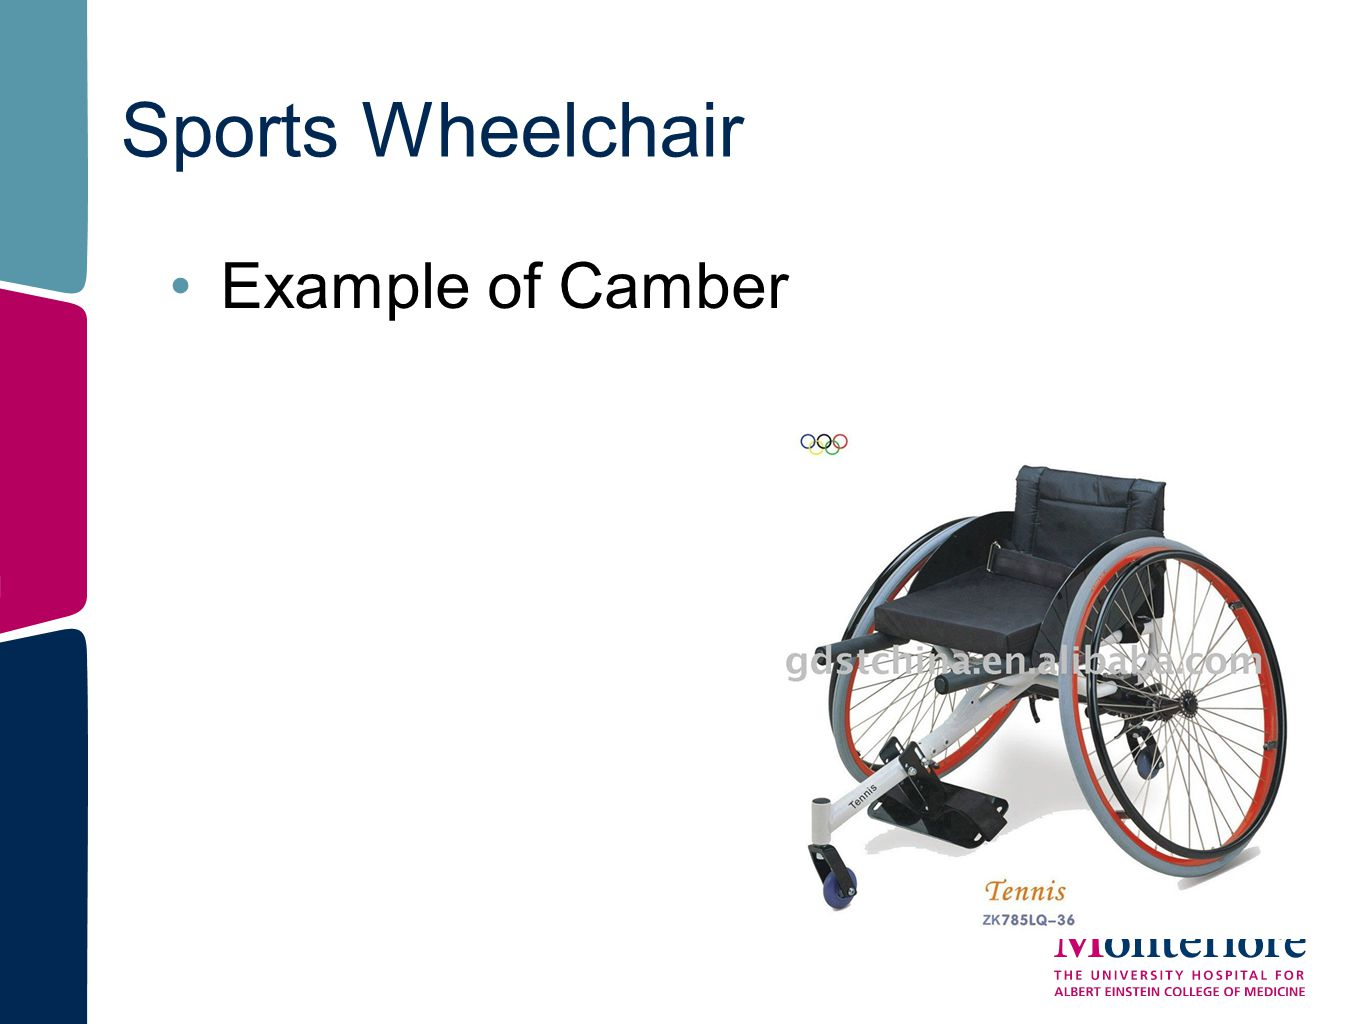 Sports Wheelchair Example of Camber